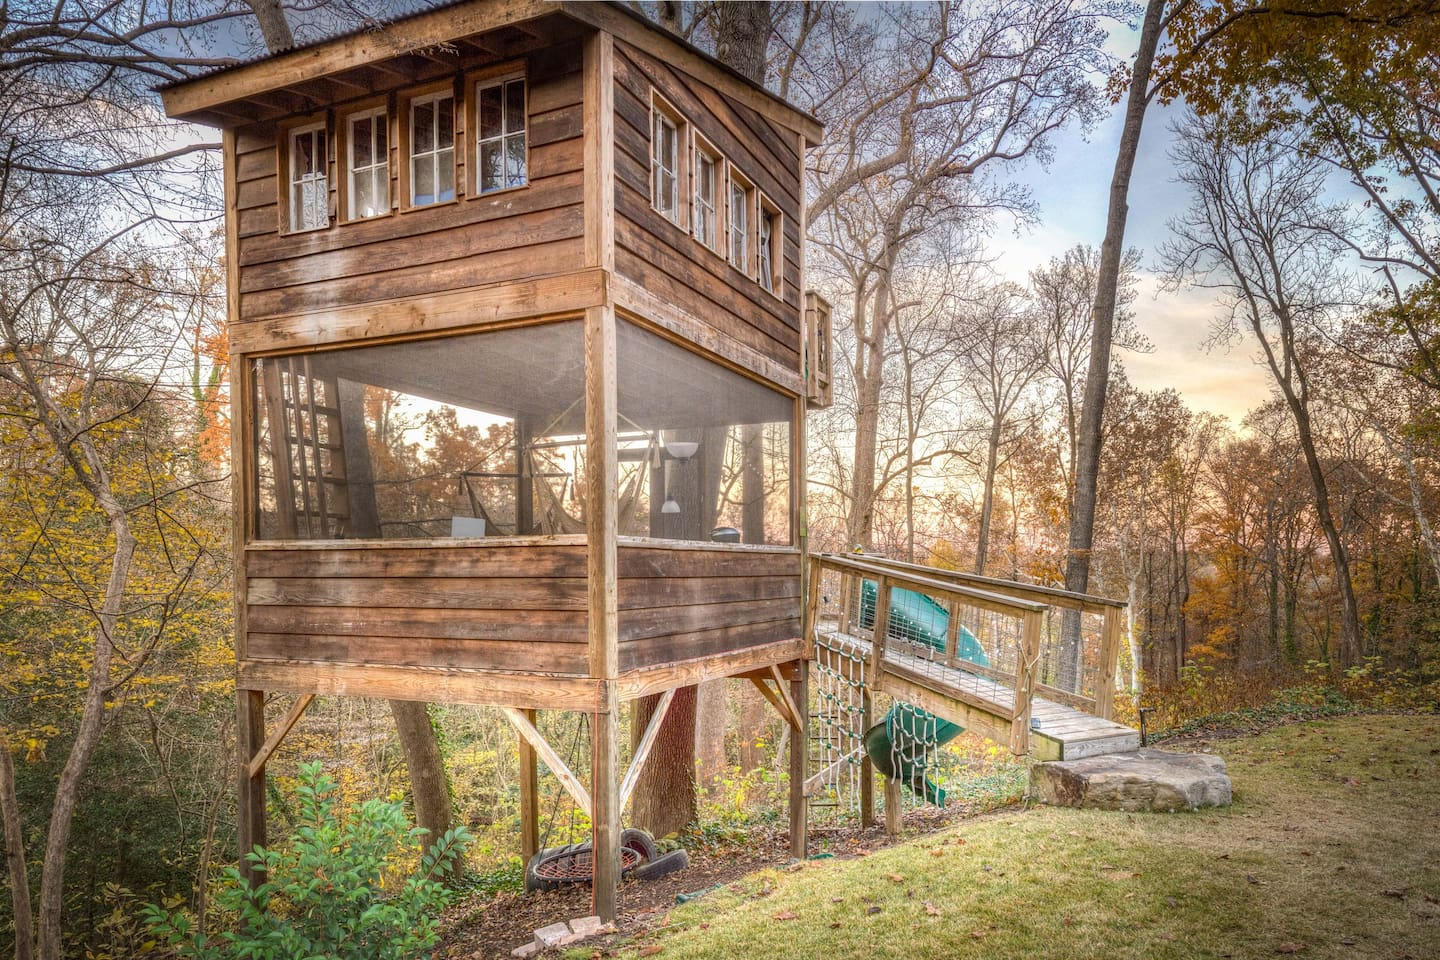 Trailside Treehouse in RVA ~ Glamp w prvt bath! - Treehouses for ...